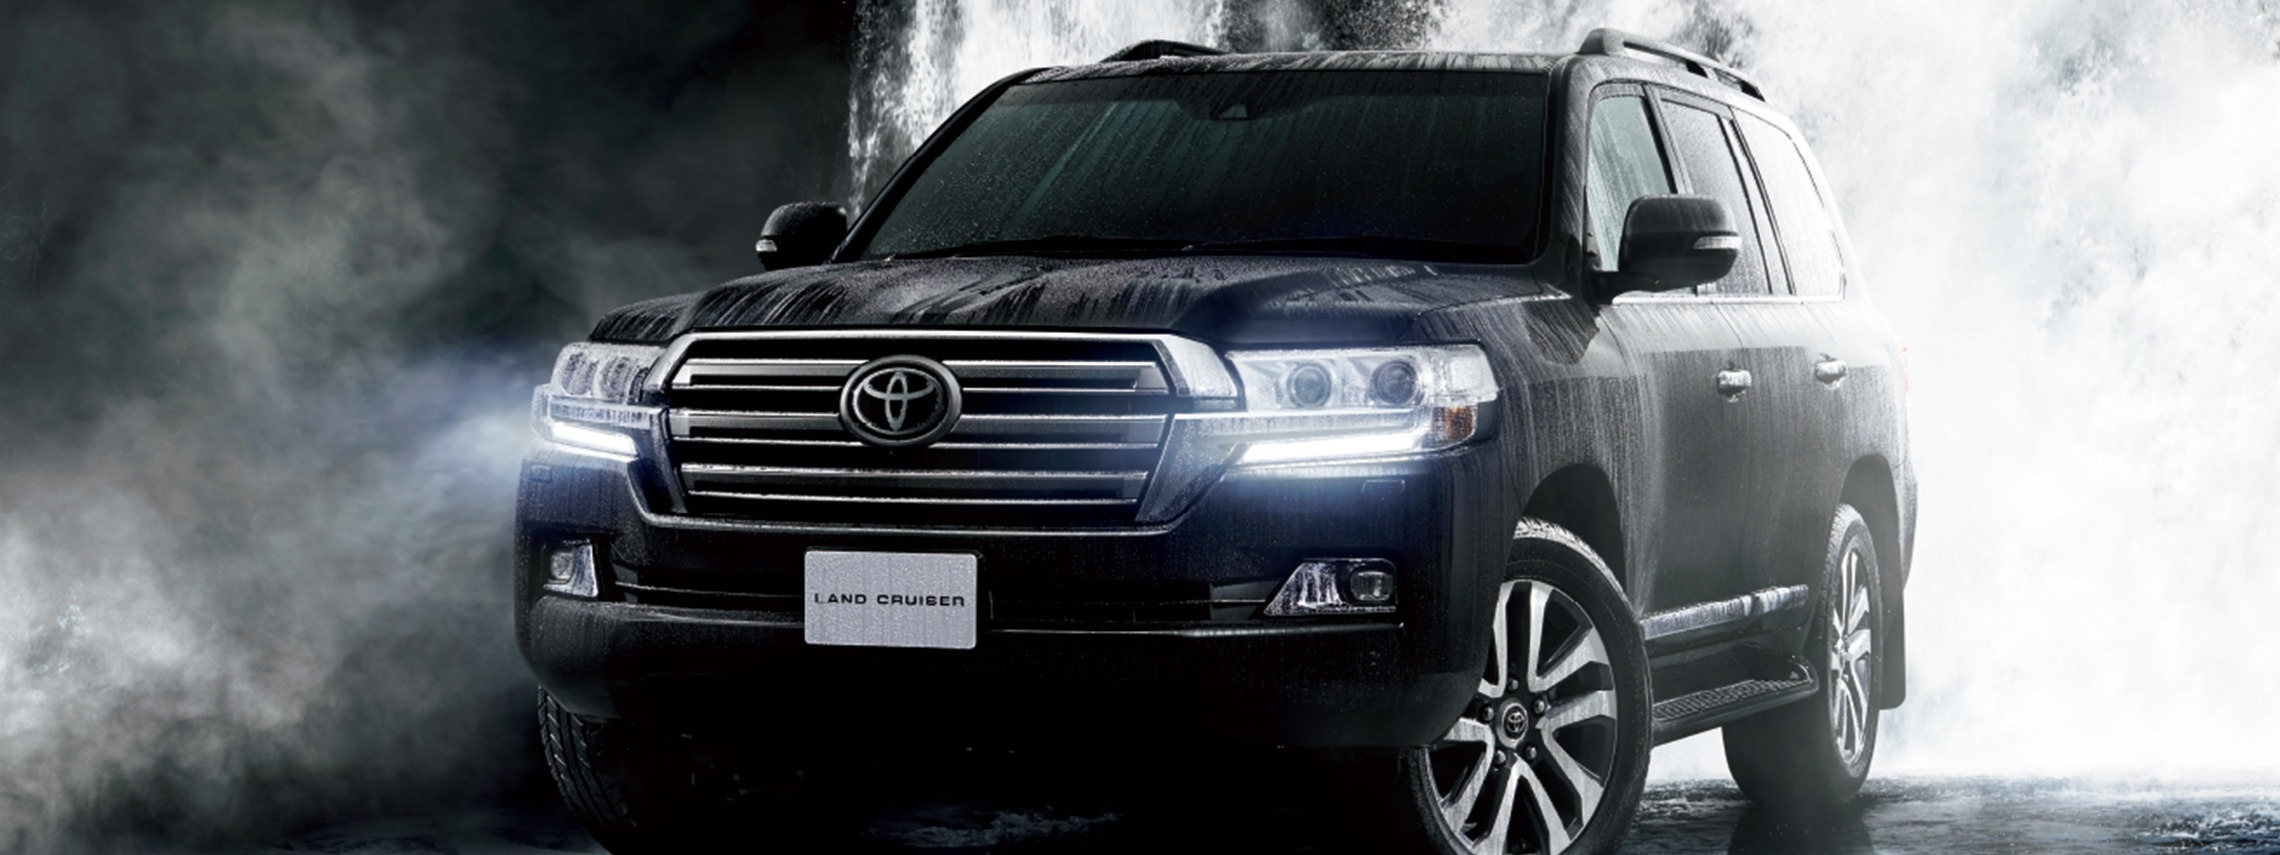 carlineup_landcruiser_gallery_4_03_pc_2